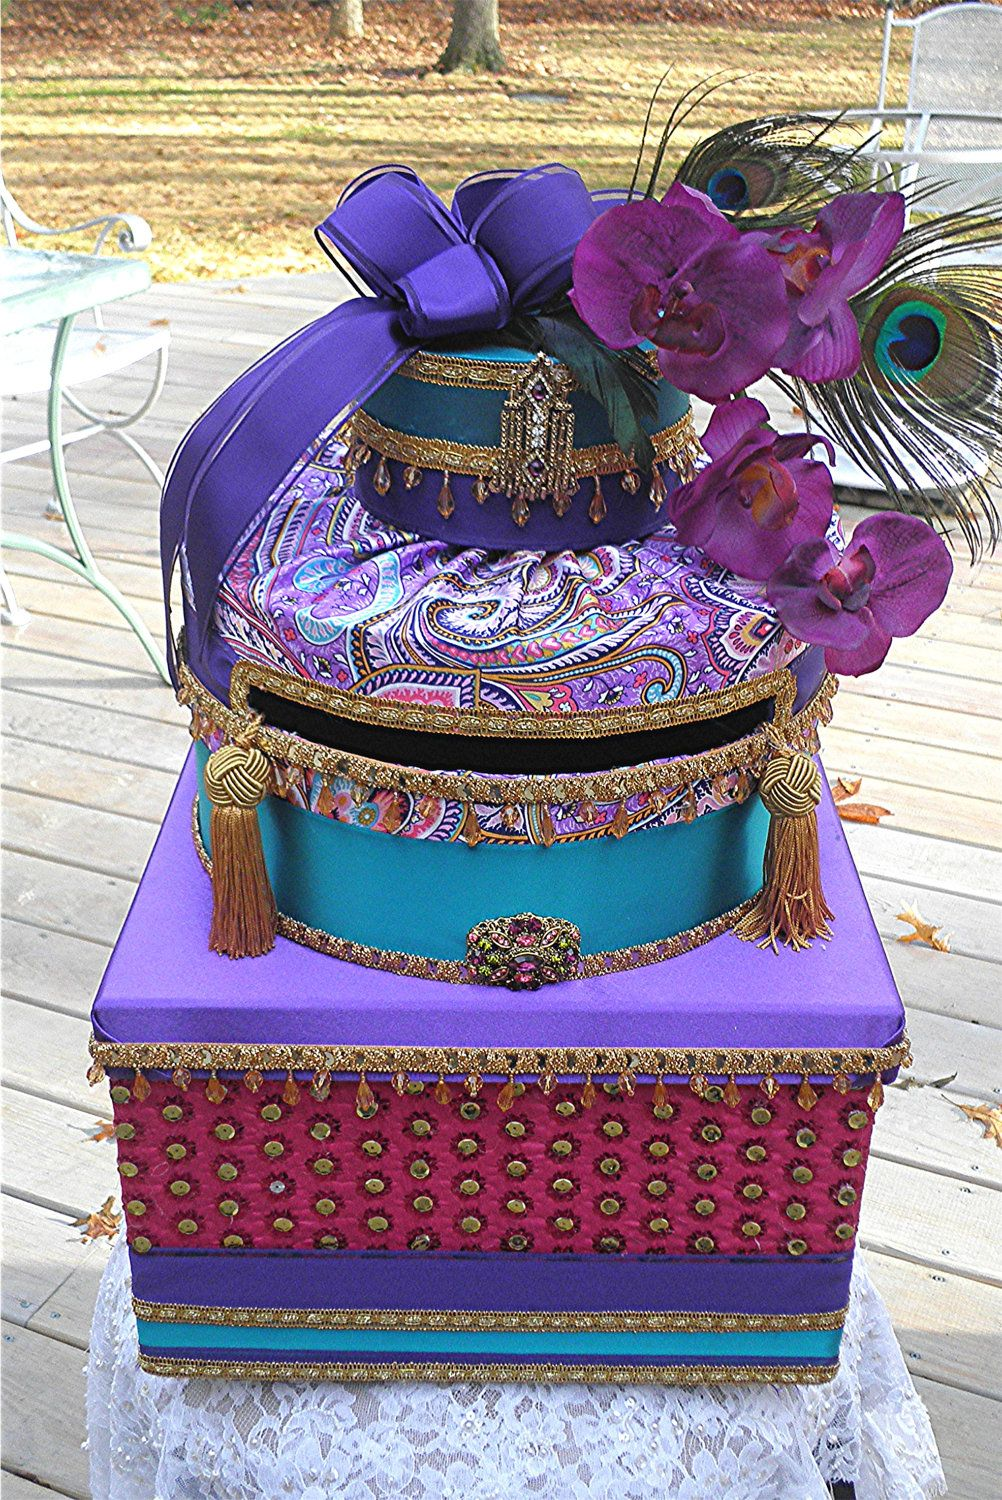 Ornate MOROCCAN  Wedding Card Box Two  ANTIQUE Vintage Brooches Peacock Feathers  Beads Tassels CUSTOMIZE